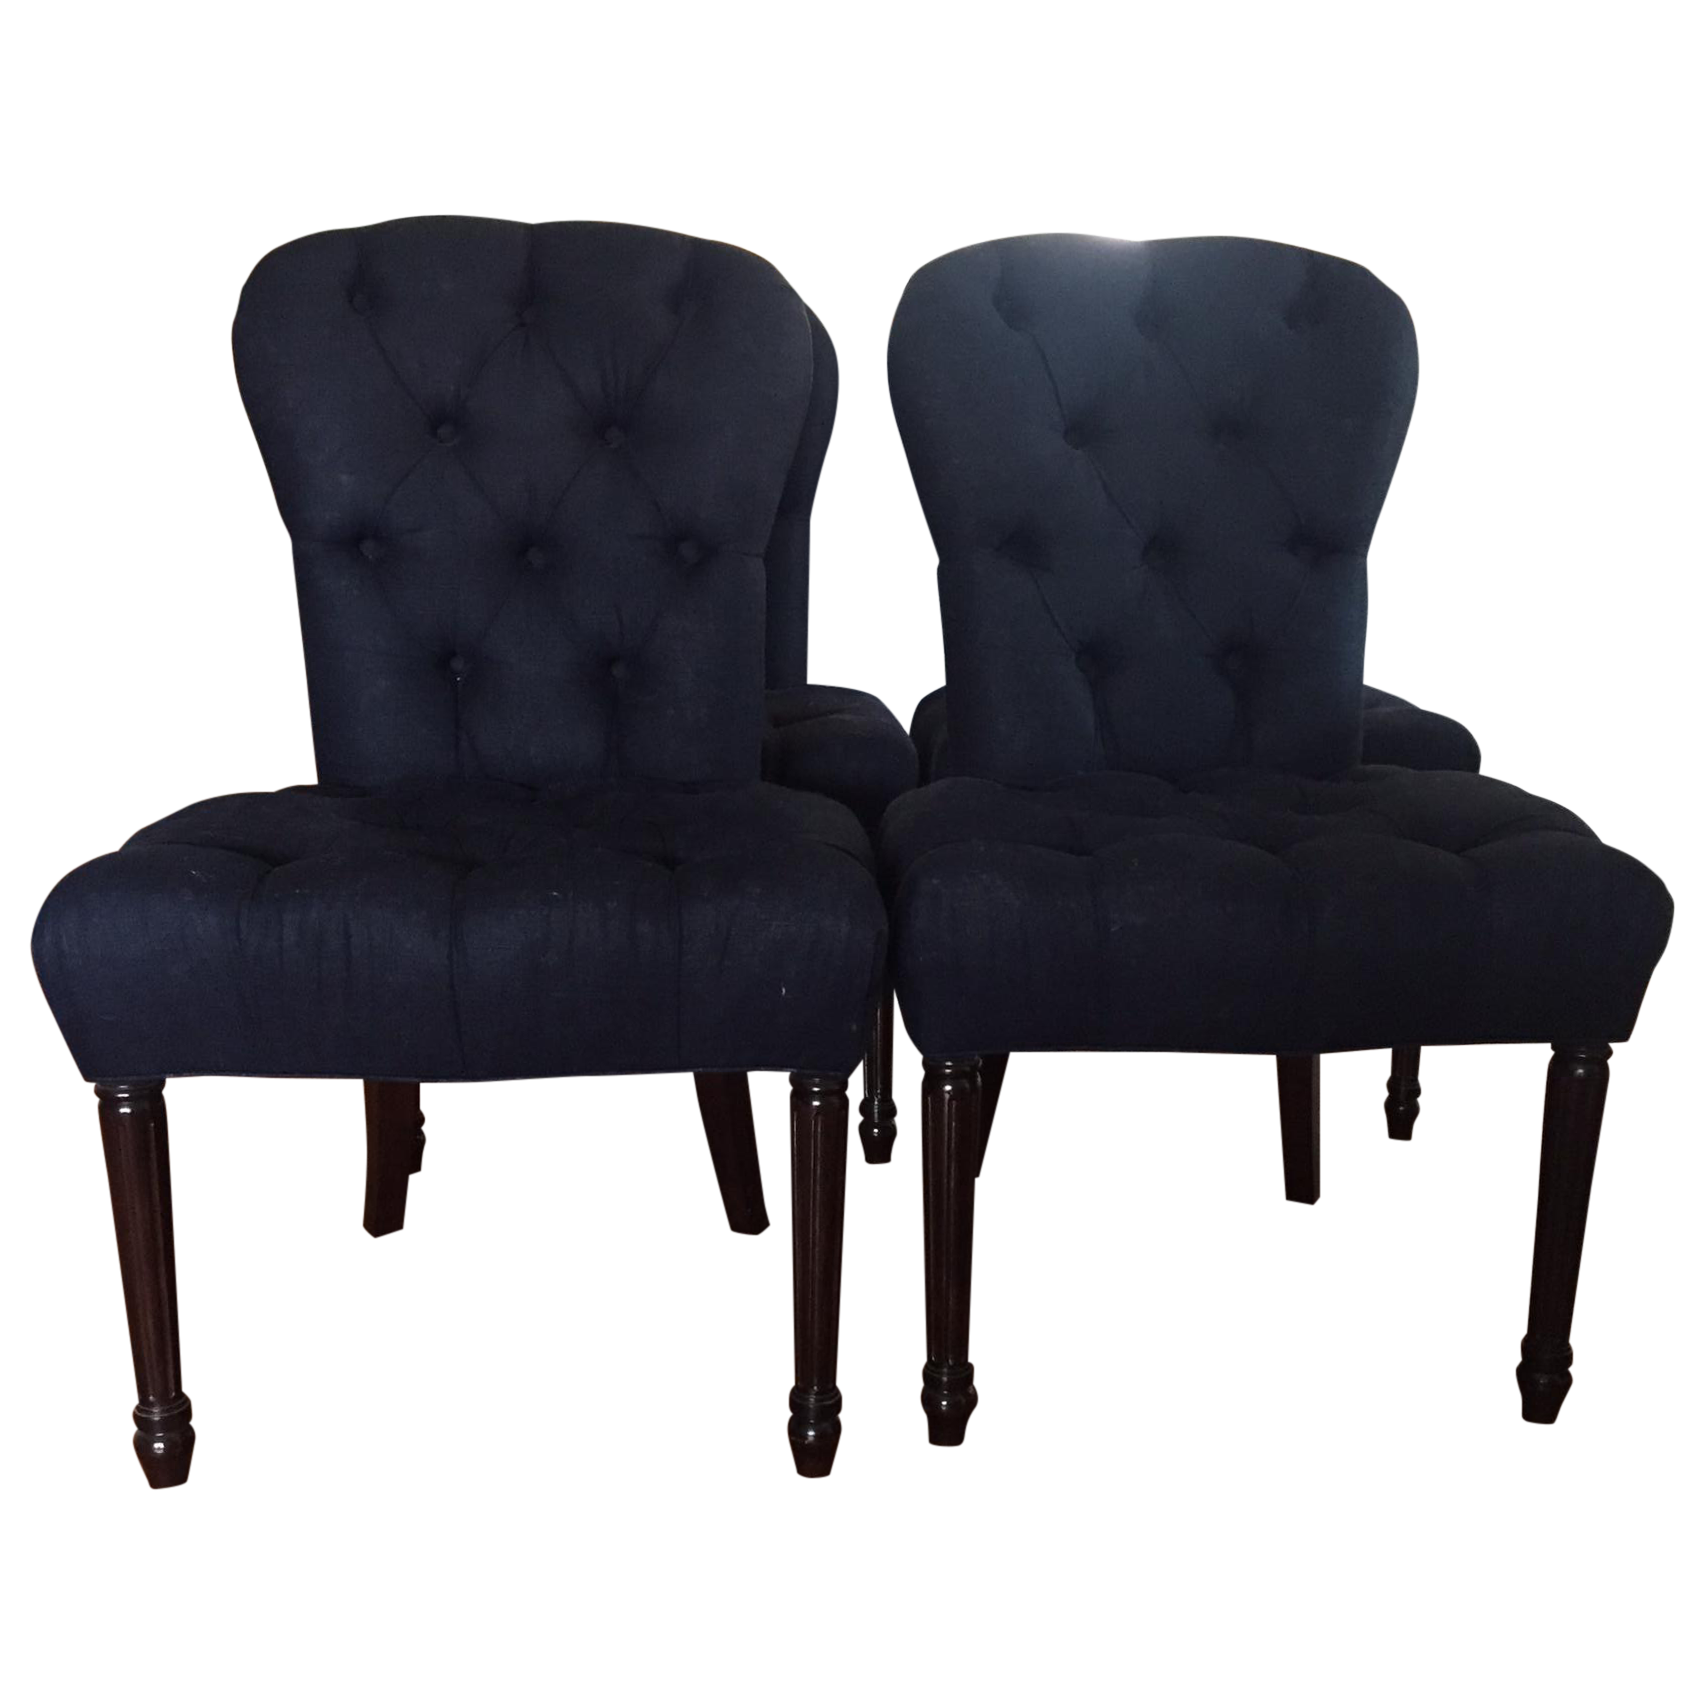 Custome Tufted Navy Blue Dining Chairs Set Of 4 Chairish